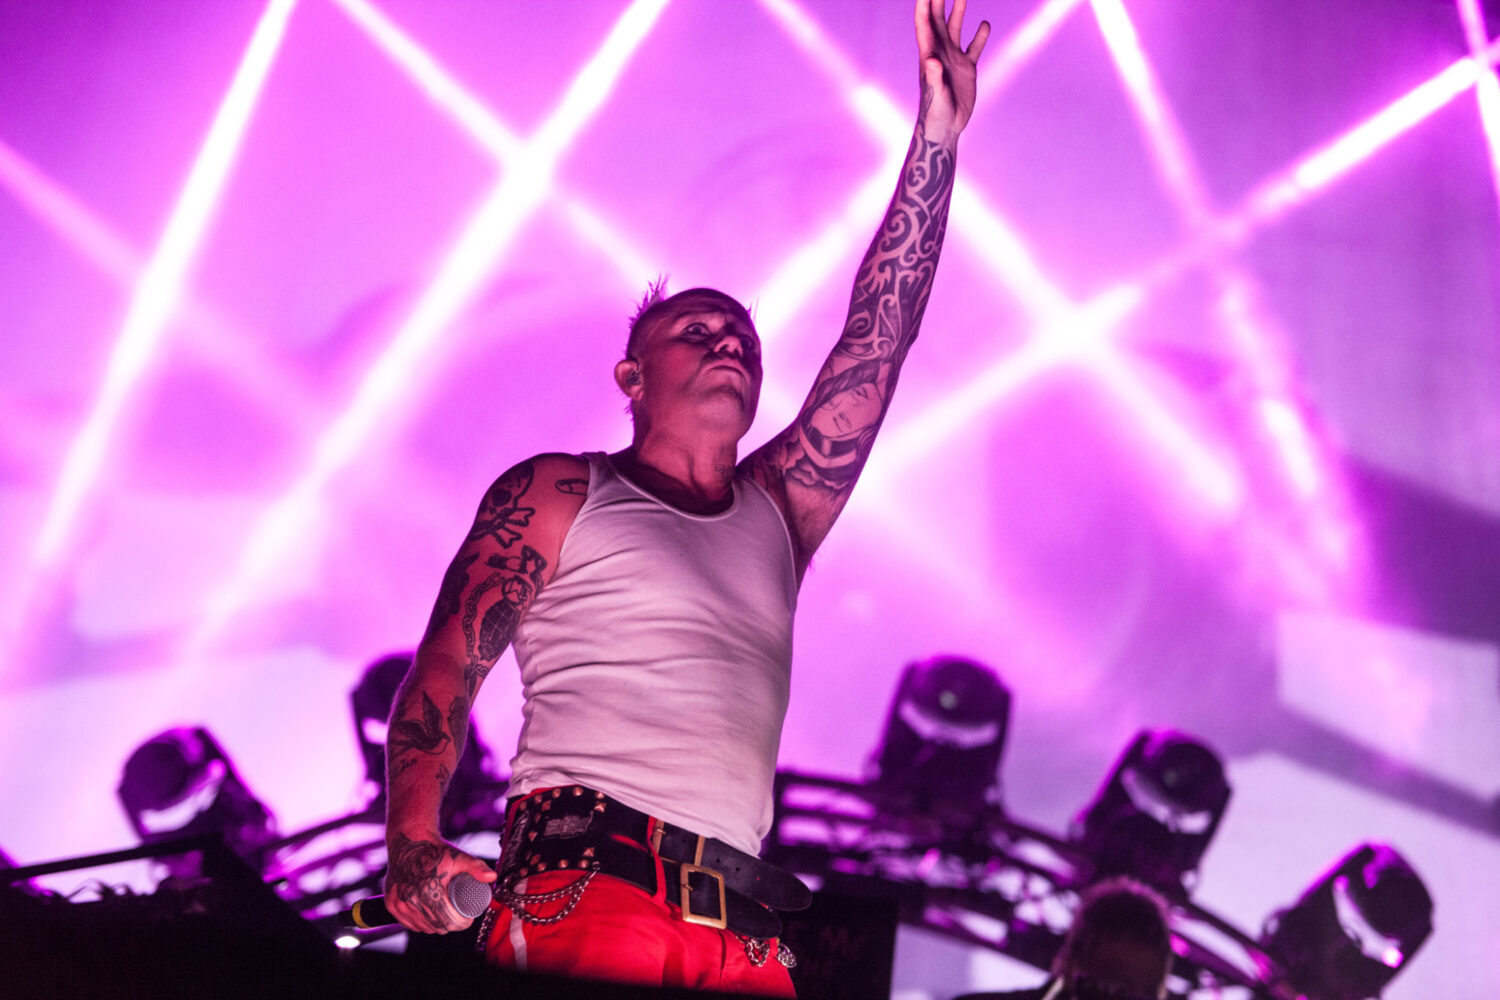 A campaign has launched to get The Prodigy's 'Firestarter' to number one